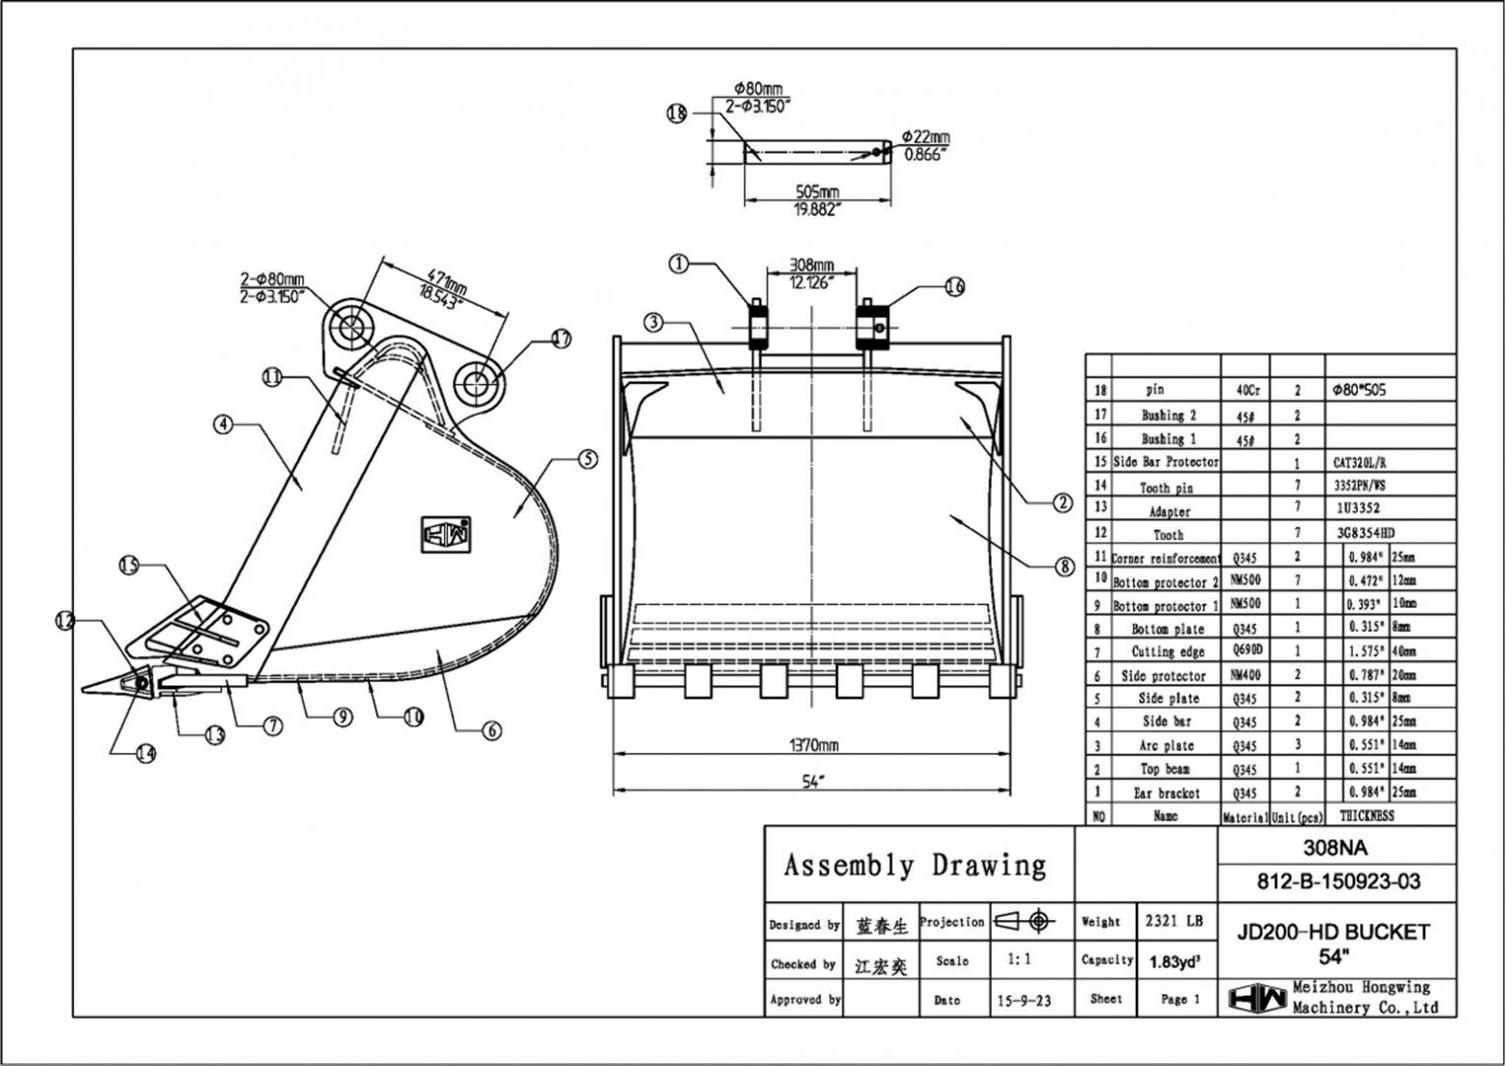 Wiring Diagram For Kenmore Elite Dryer Front Loader